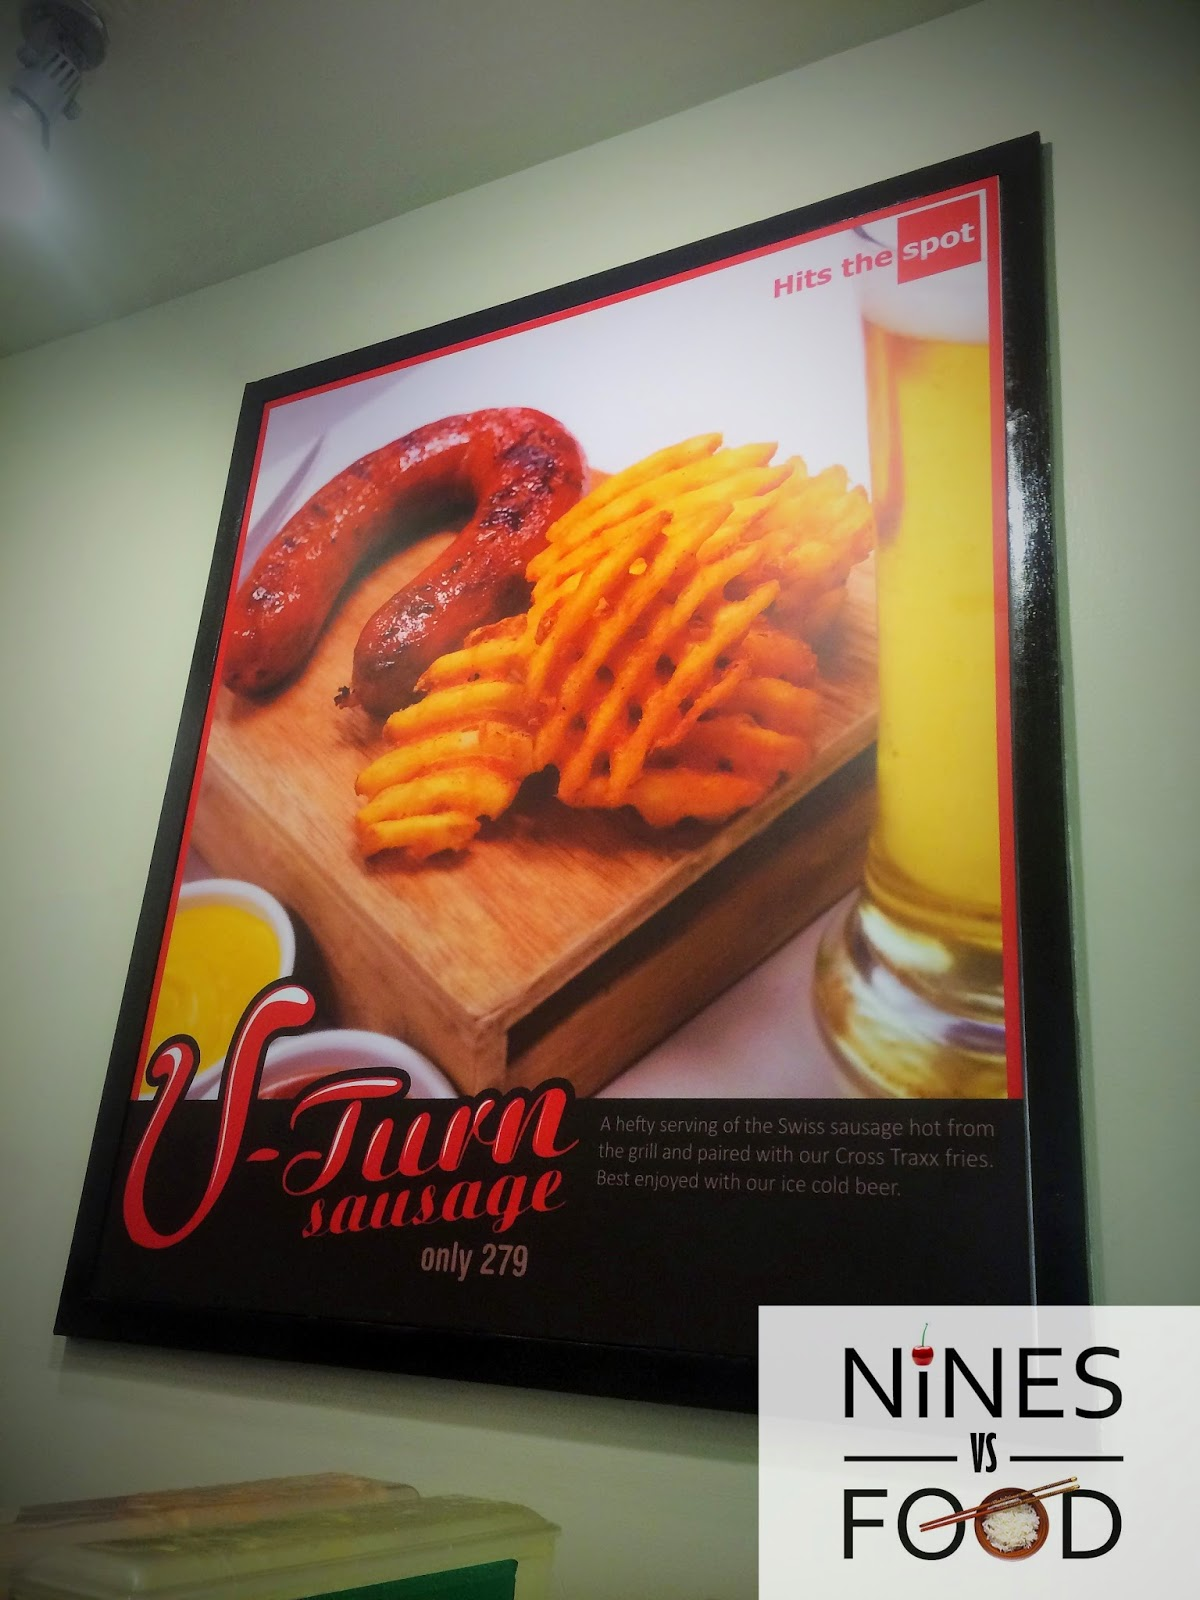 Nines vs Food - Wham! Burgers and Sausages-2.jpg